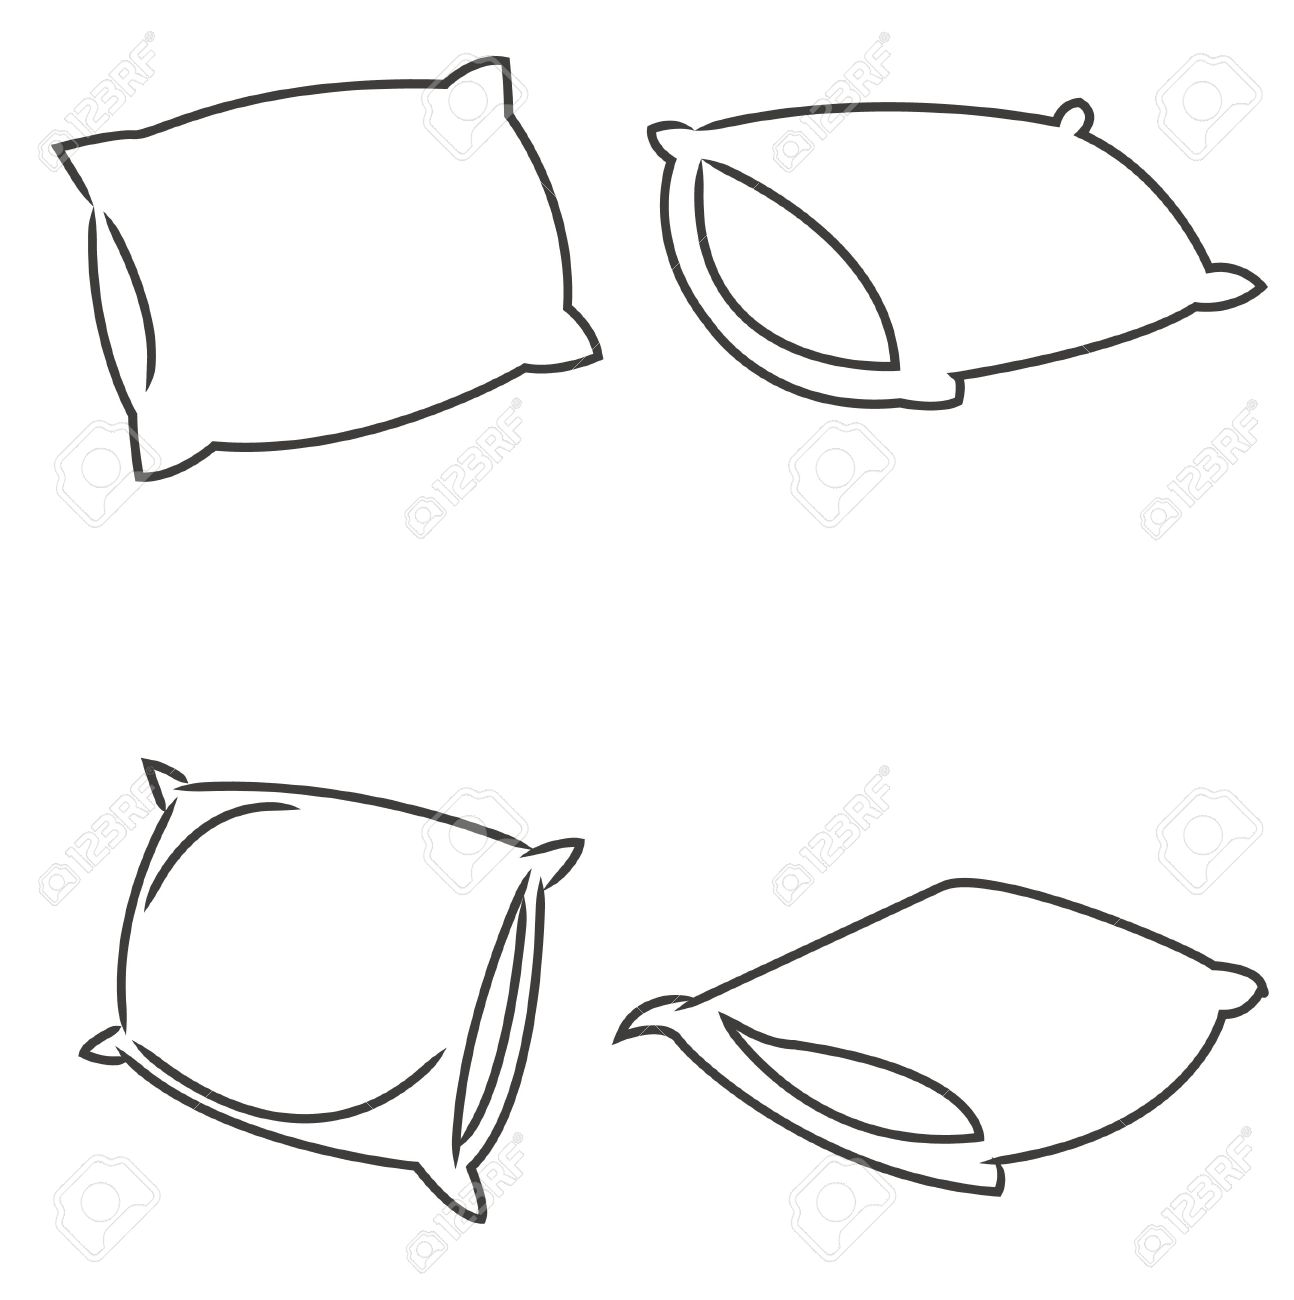 Pillow Cartoon Vector Royalty Free Cliparts, Vectors, And Stock ... for Pillow Cartoon Black And White  55jwn